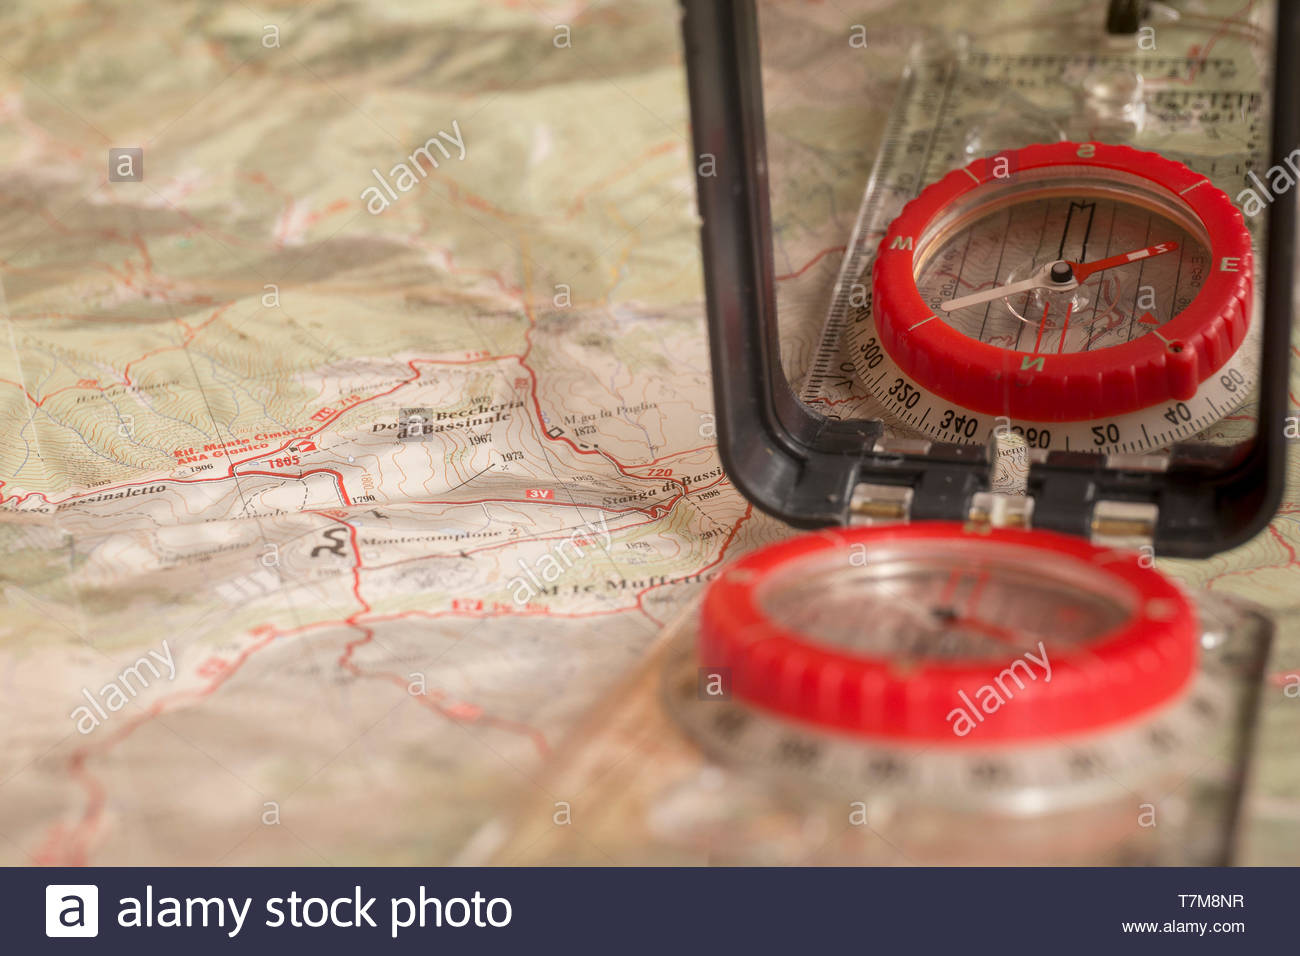 Cartographic compass with mirror used for orienteering, over a topographic map related to an italian area - Stock Image